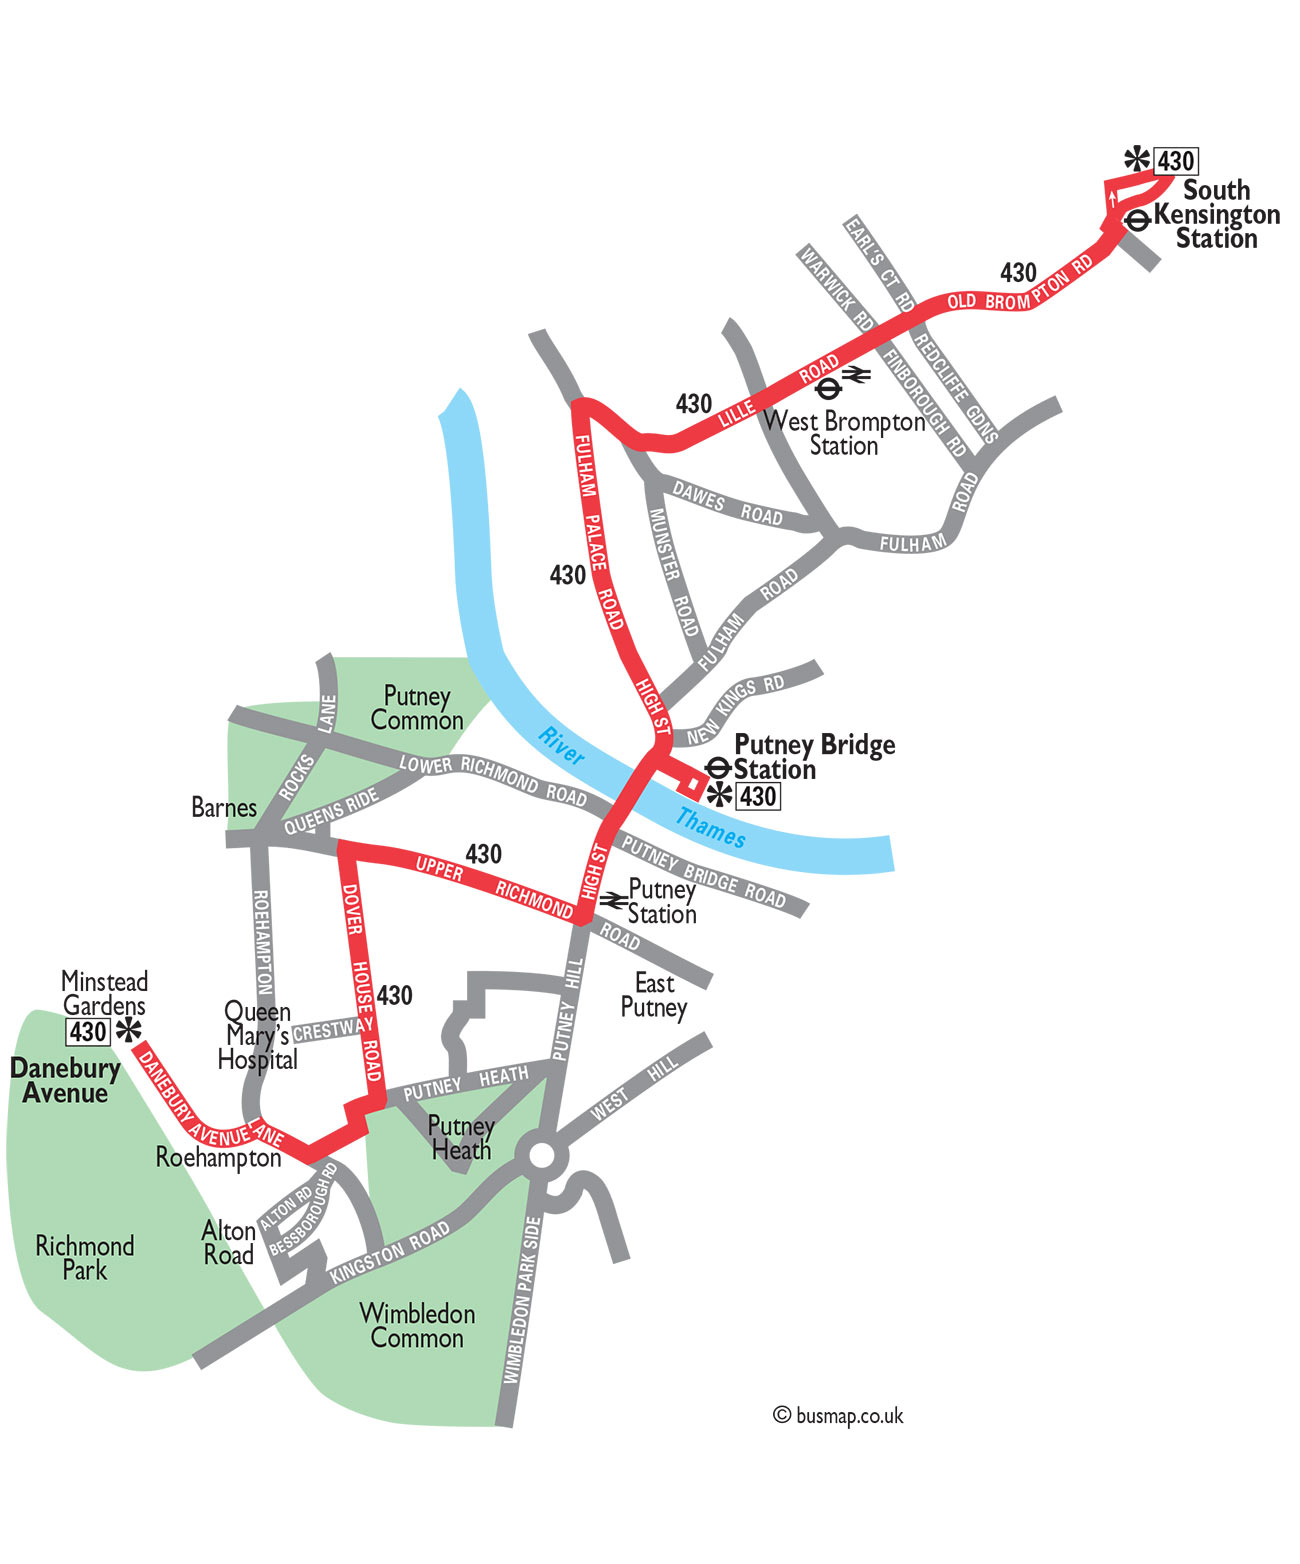 Free Christmas Bus Route 430 Map